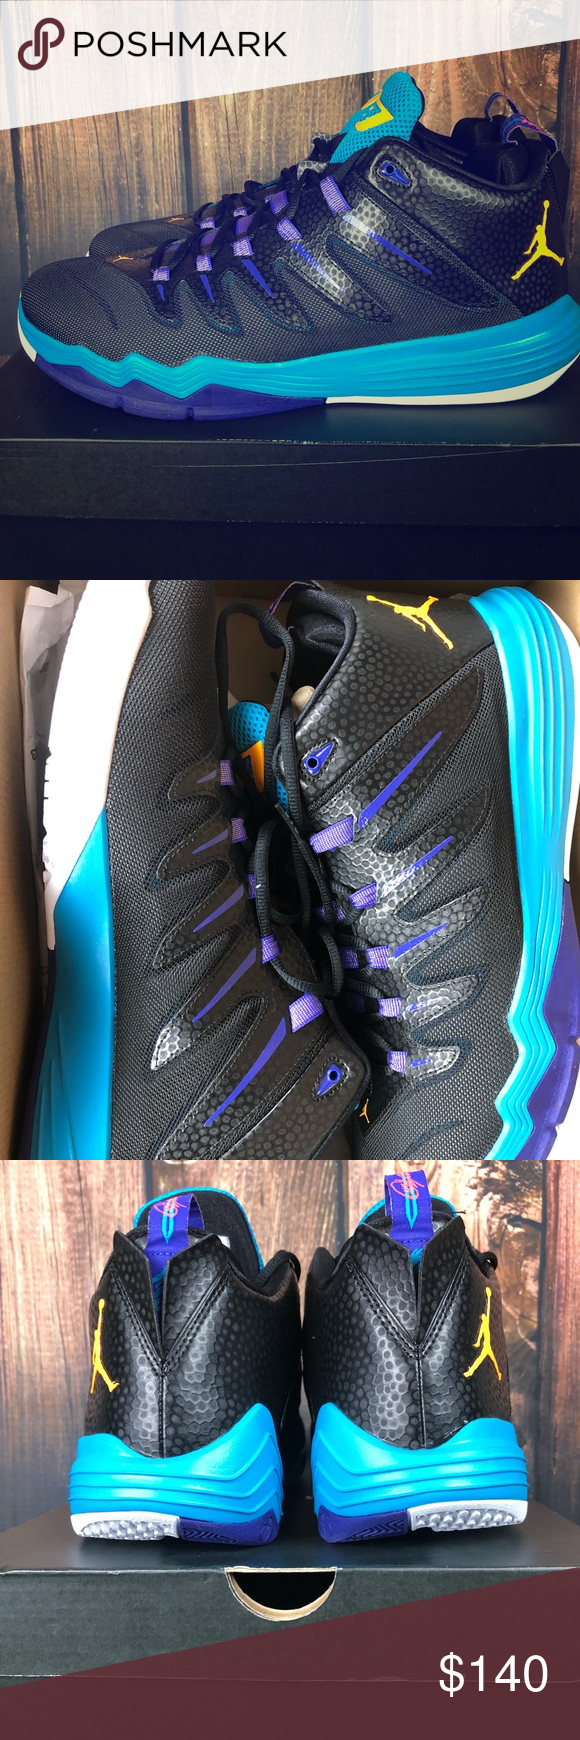 pretty nice 2d946 d35c7 New Jordan CP3.IX Black Laser Orange-Blue Lagoon Brand new with box Chis  Paul s. I ship everything next business day. Jordan Shoes Athletic Shoes